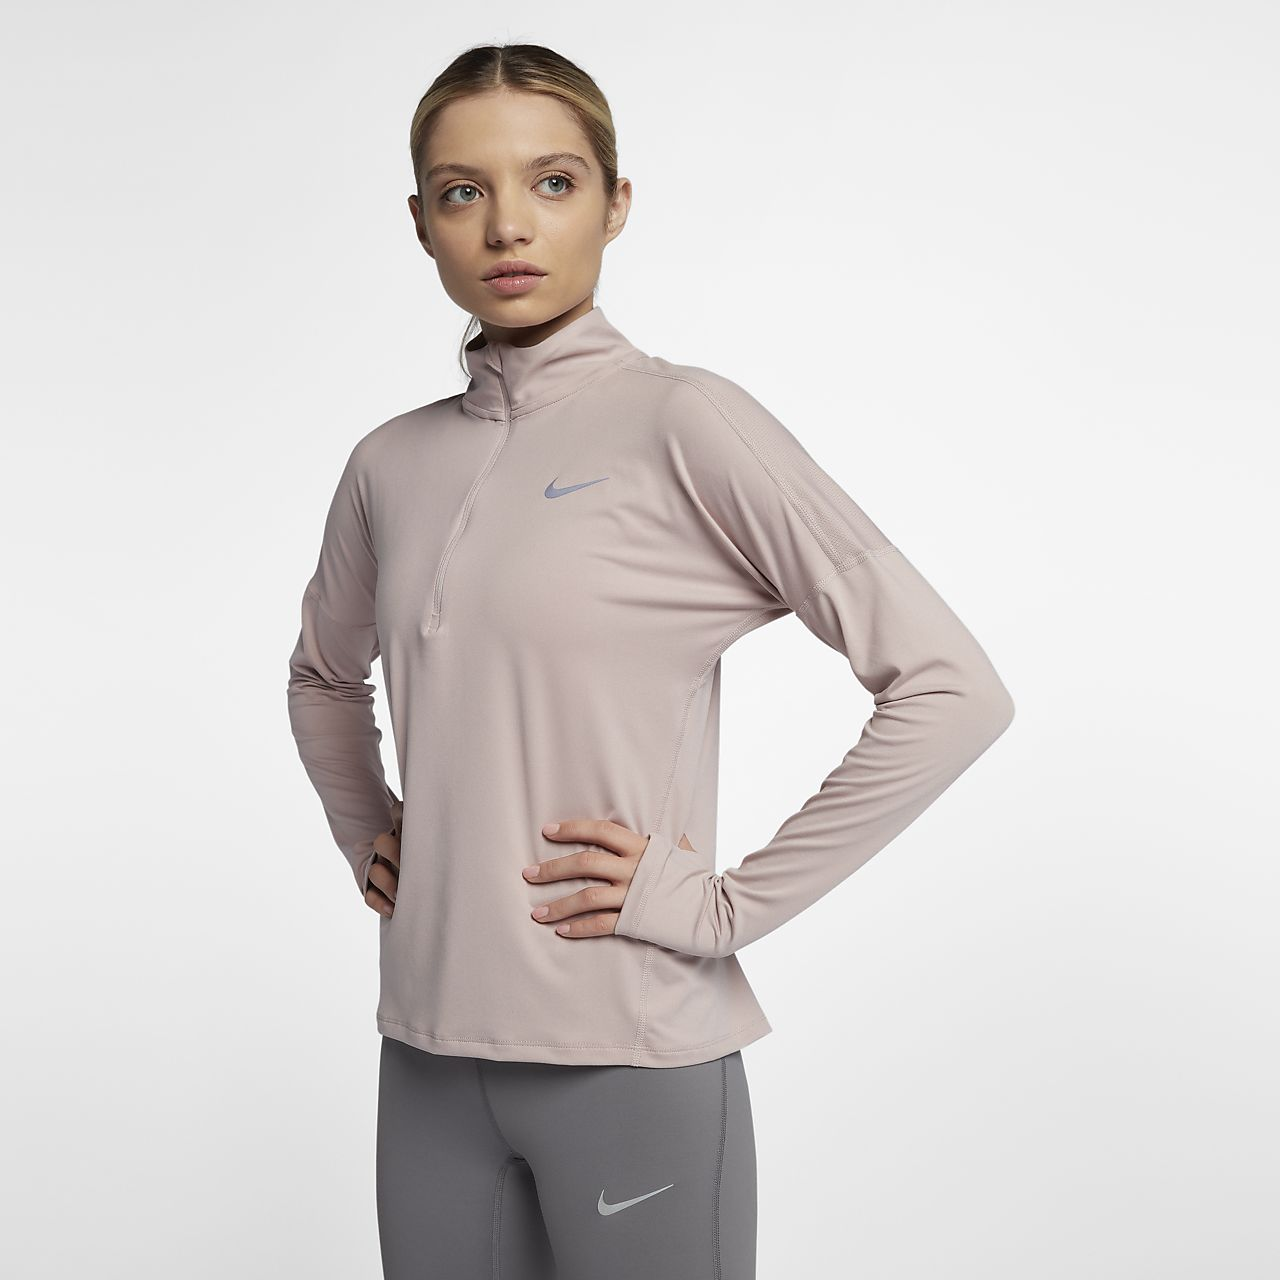 d6d65454 Nike Womens Pro Hyperwarm Half Zip Long Sleeve Compression Shirt ...